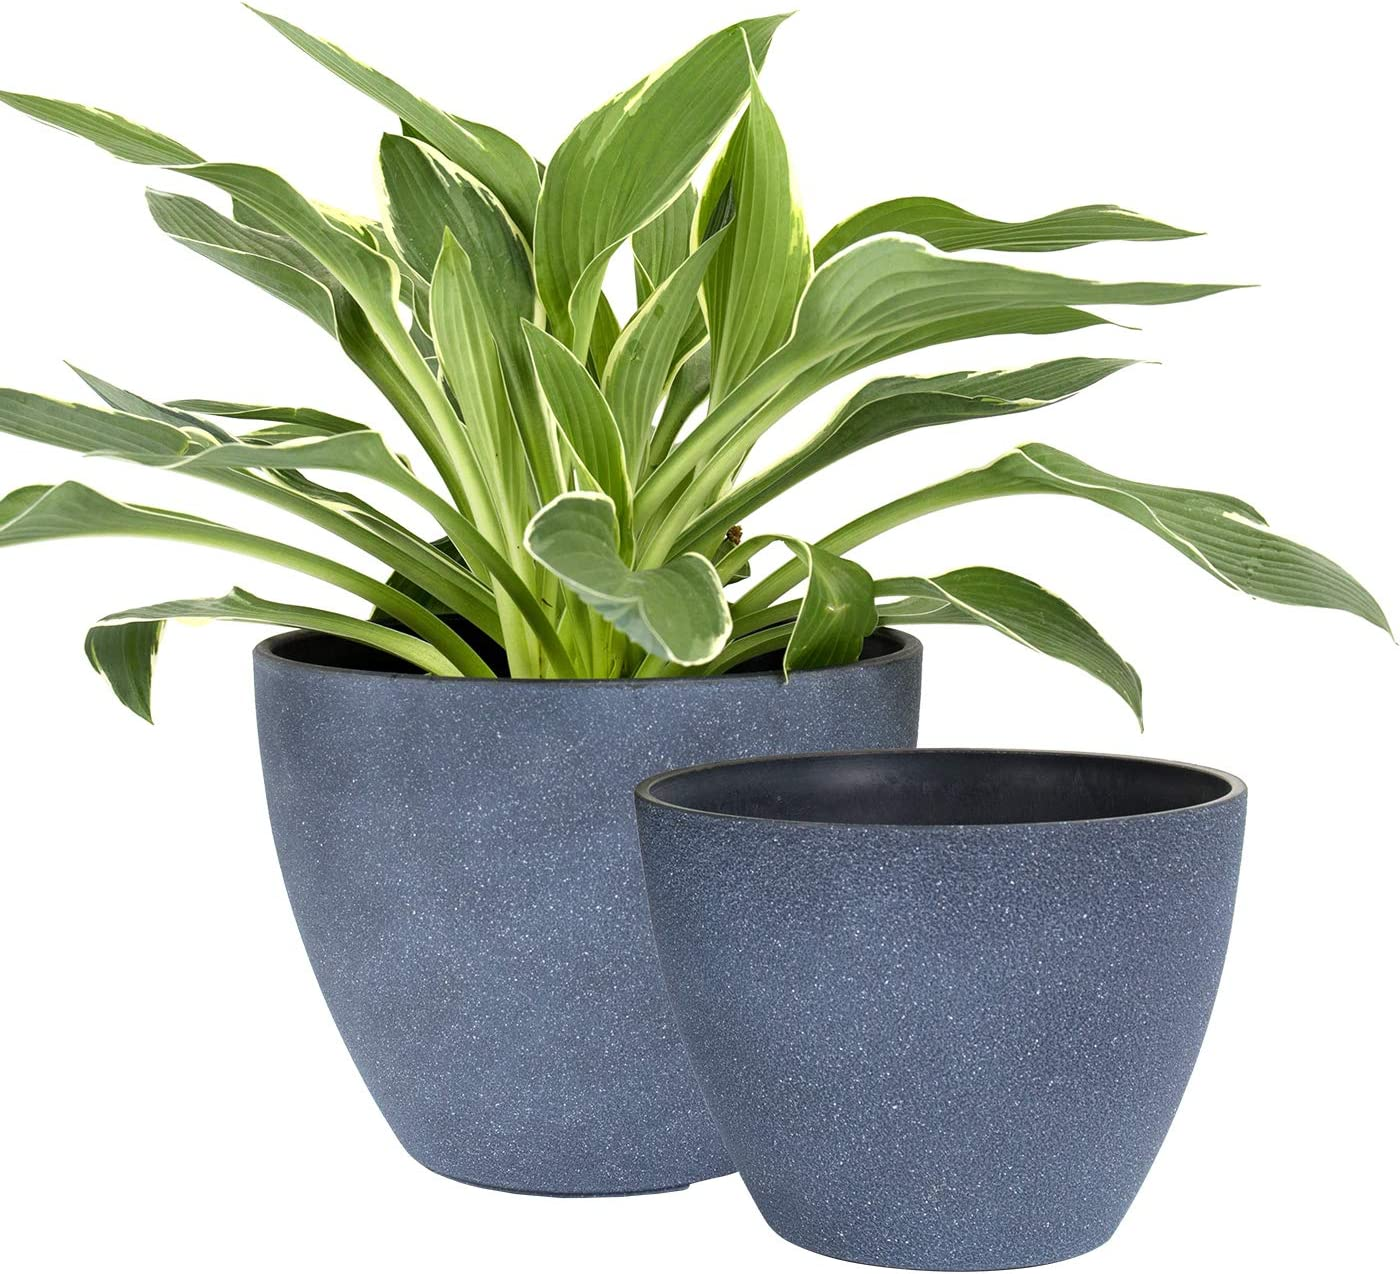 Flower Pots Outdoor Indoor Garden Planters, Plant Containers with Drain Hole, Weathered Grey (8.6 + 7.5 Inch)